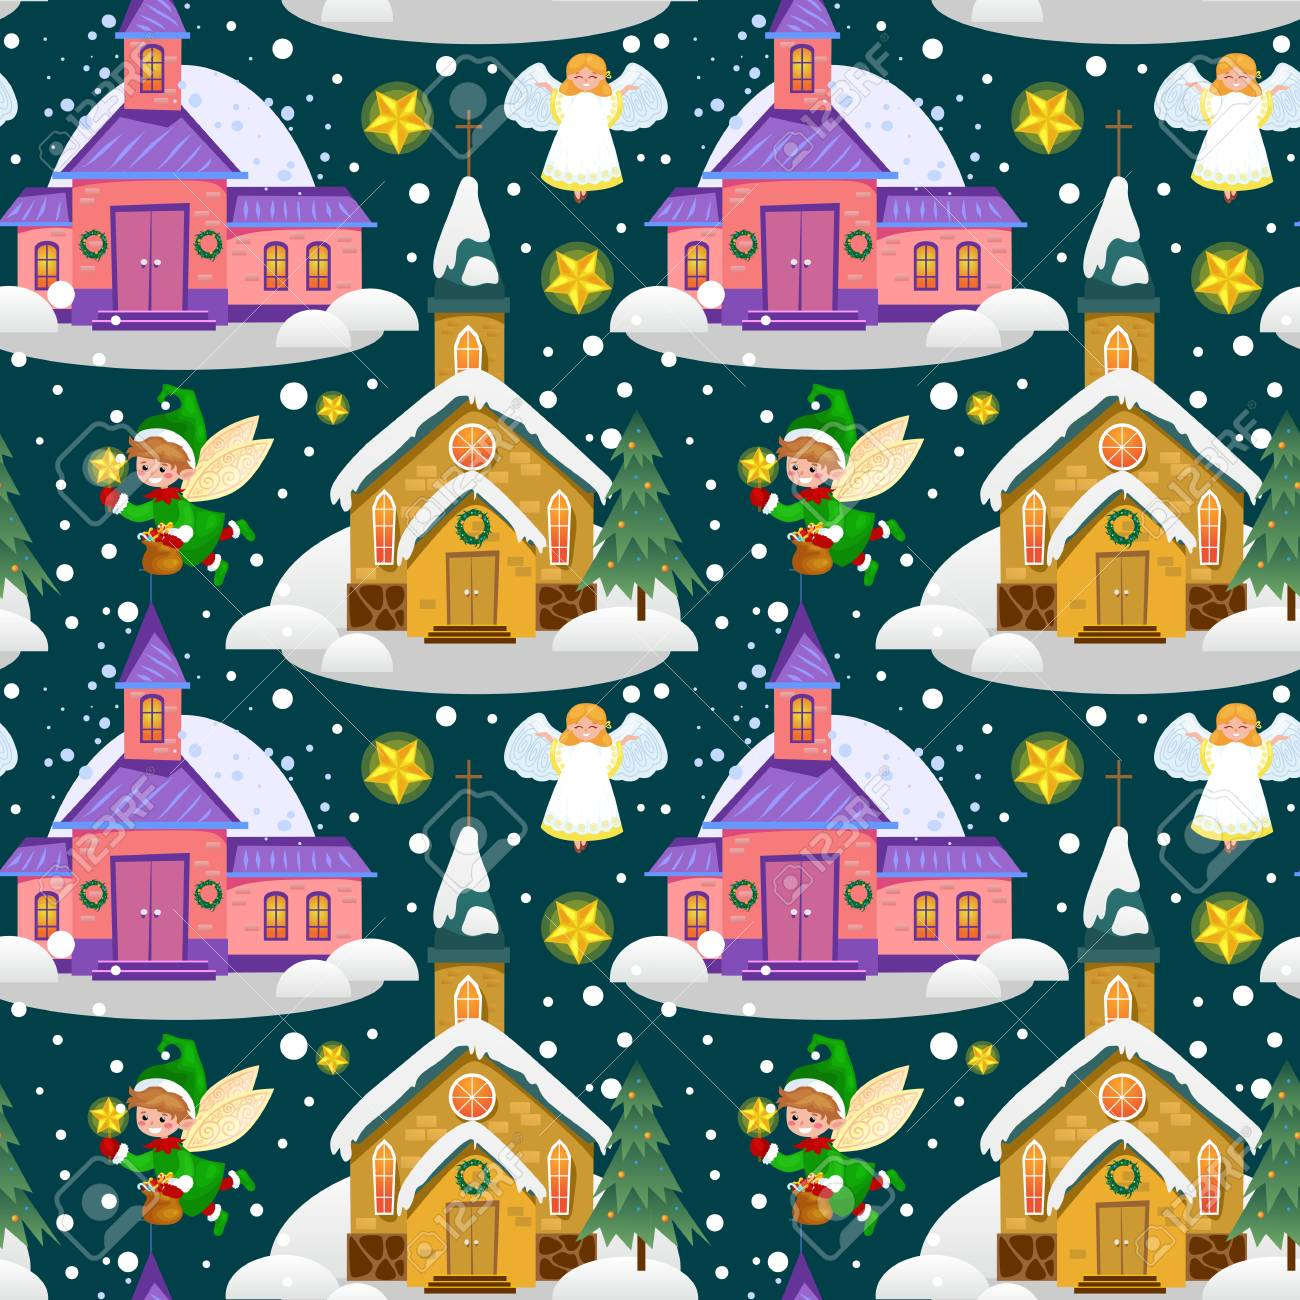 Merry Christmas and Happy New Year card, church and green tree under snow, Christianity and Catholic winter city cathedral vector illustration, religious holy background. - 91538756